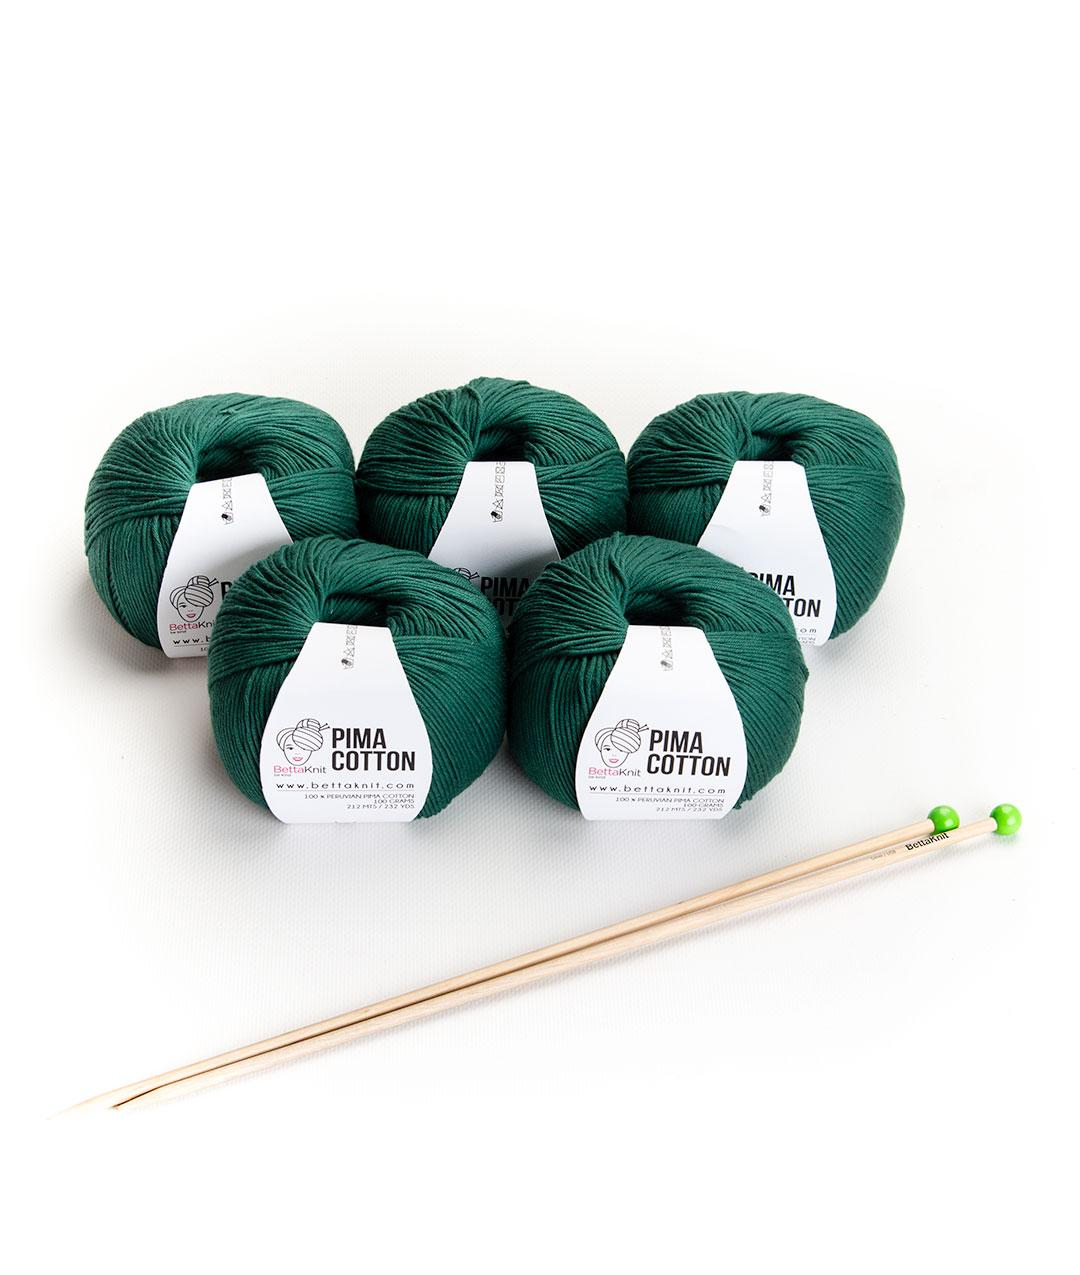 Yarn boxes without Needles  - Pack of YarnYarn boxes with Needles  - Pack of Yarn - Pima Cotton Box - 5 balls + needles - 1